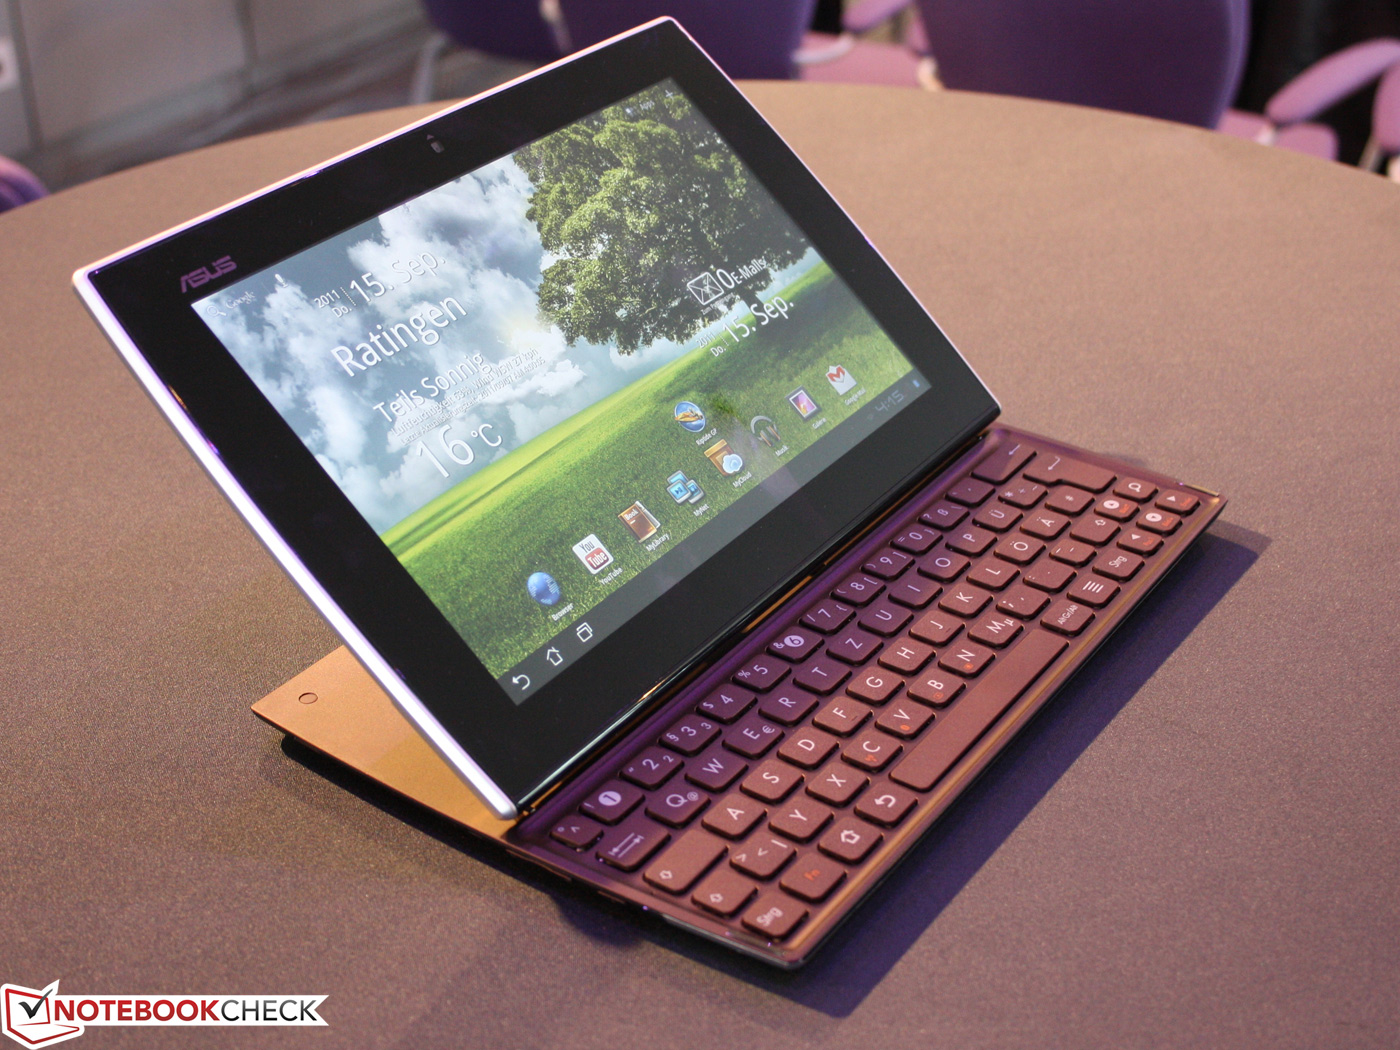 asus eee pad slider tastatur tablet in der fotostrecke. Black Bedroom Furniture Sets. Home Design Ideas